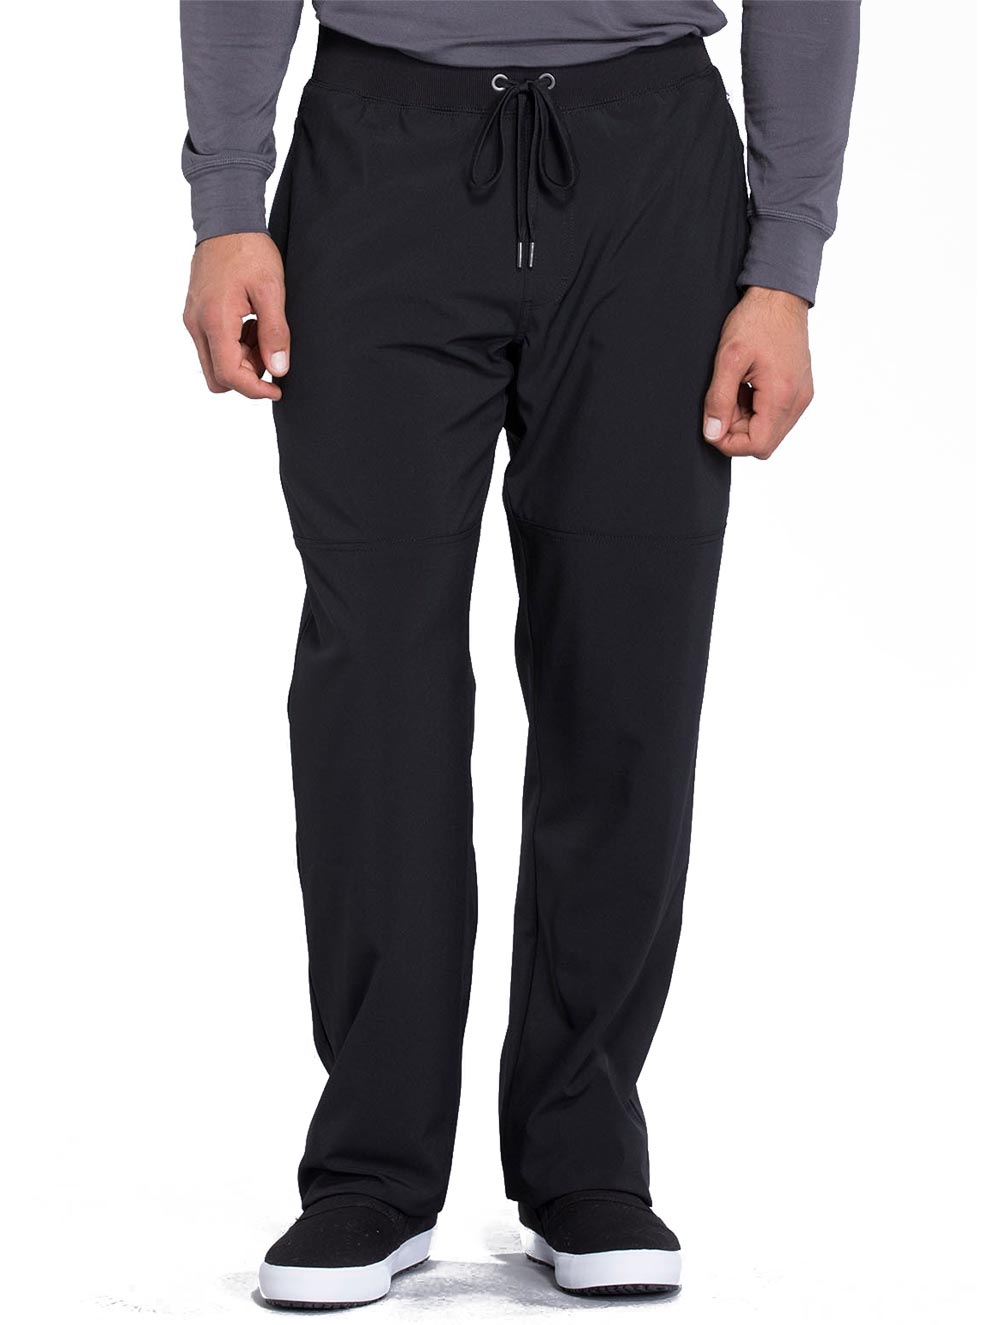 Men's Tapered Leg Drawstring Pant